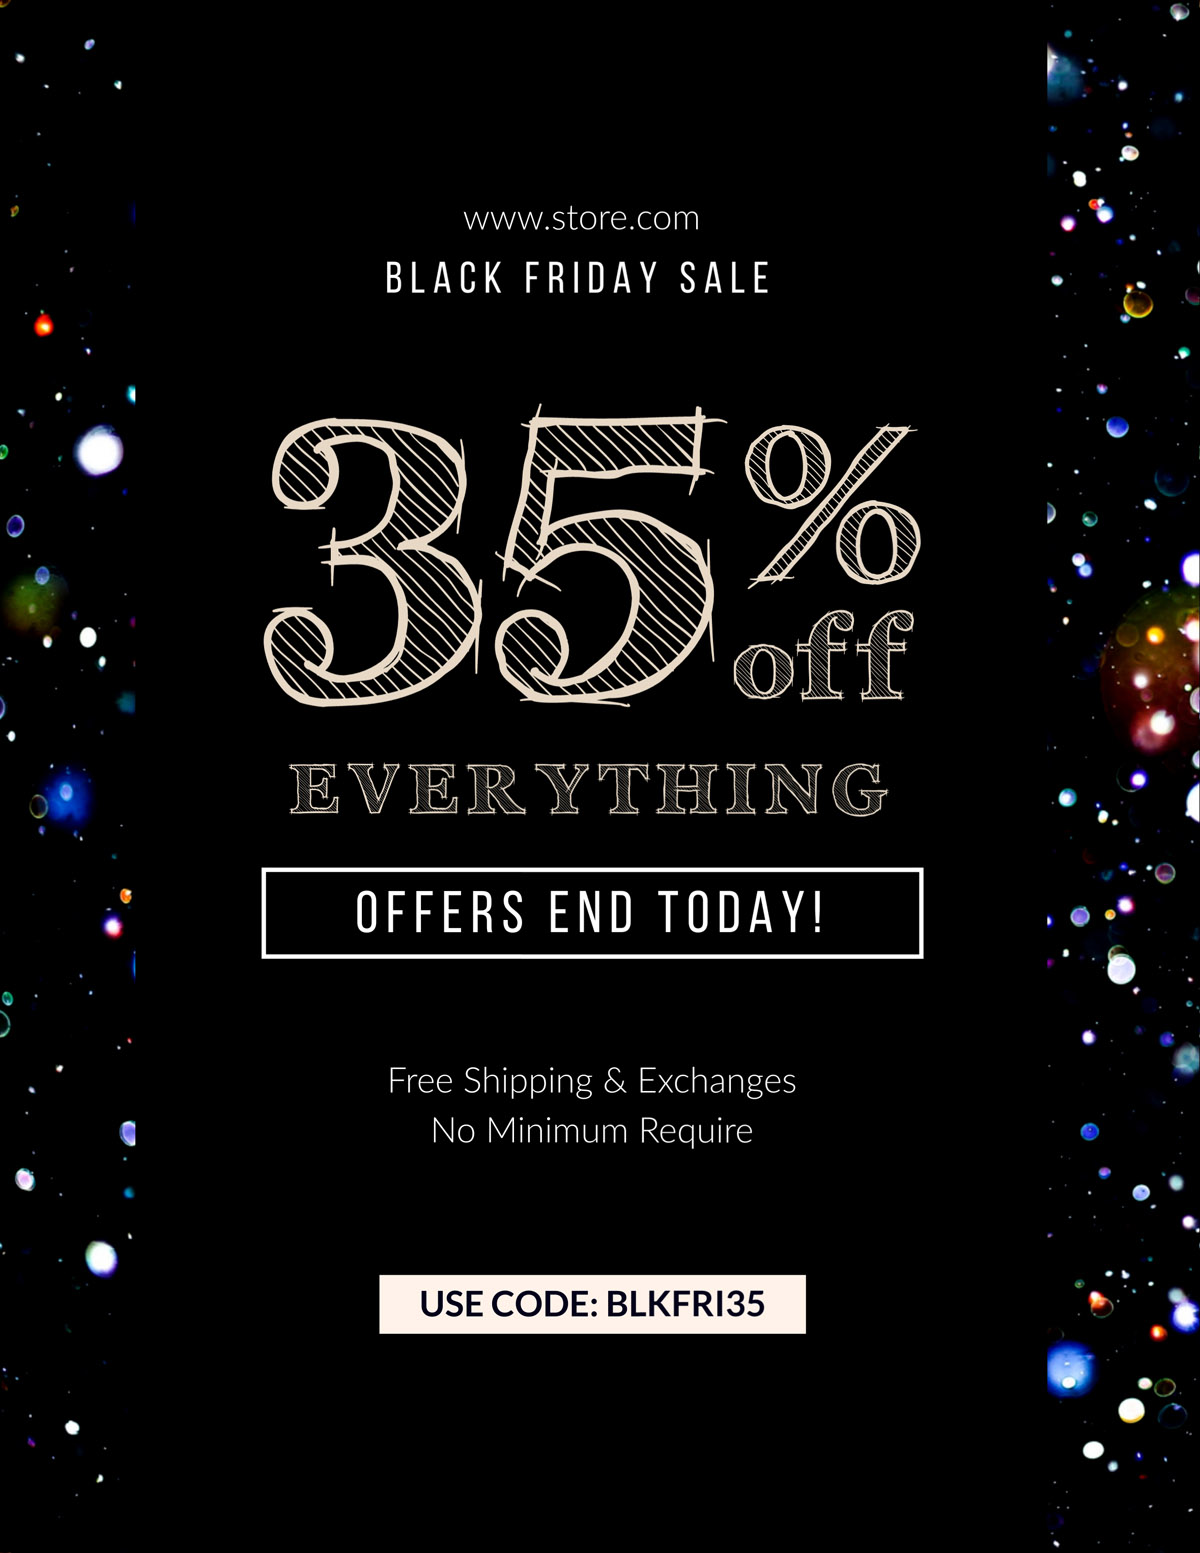 flyer templates - black friday sale